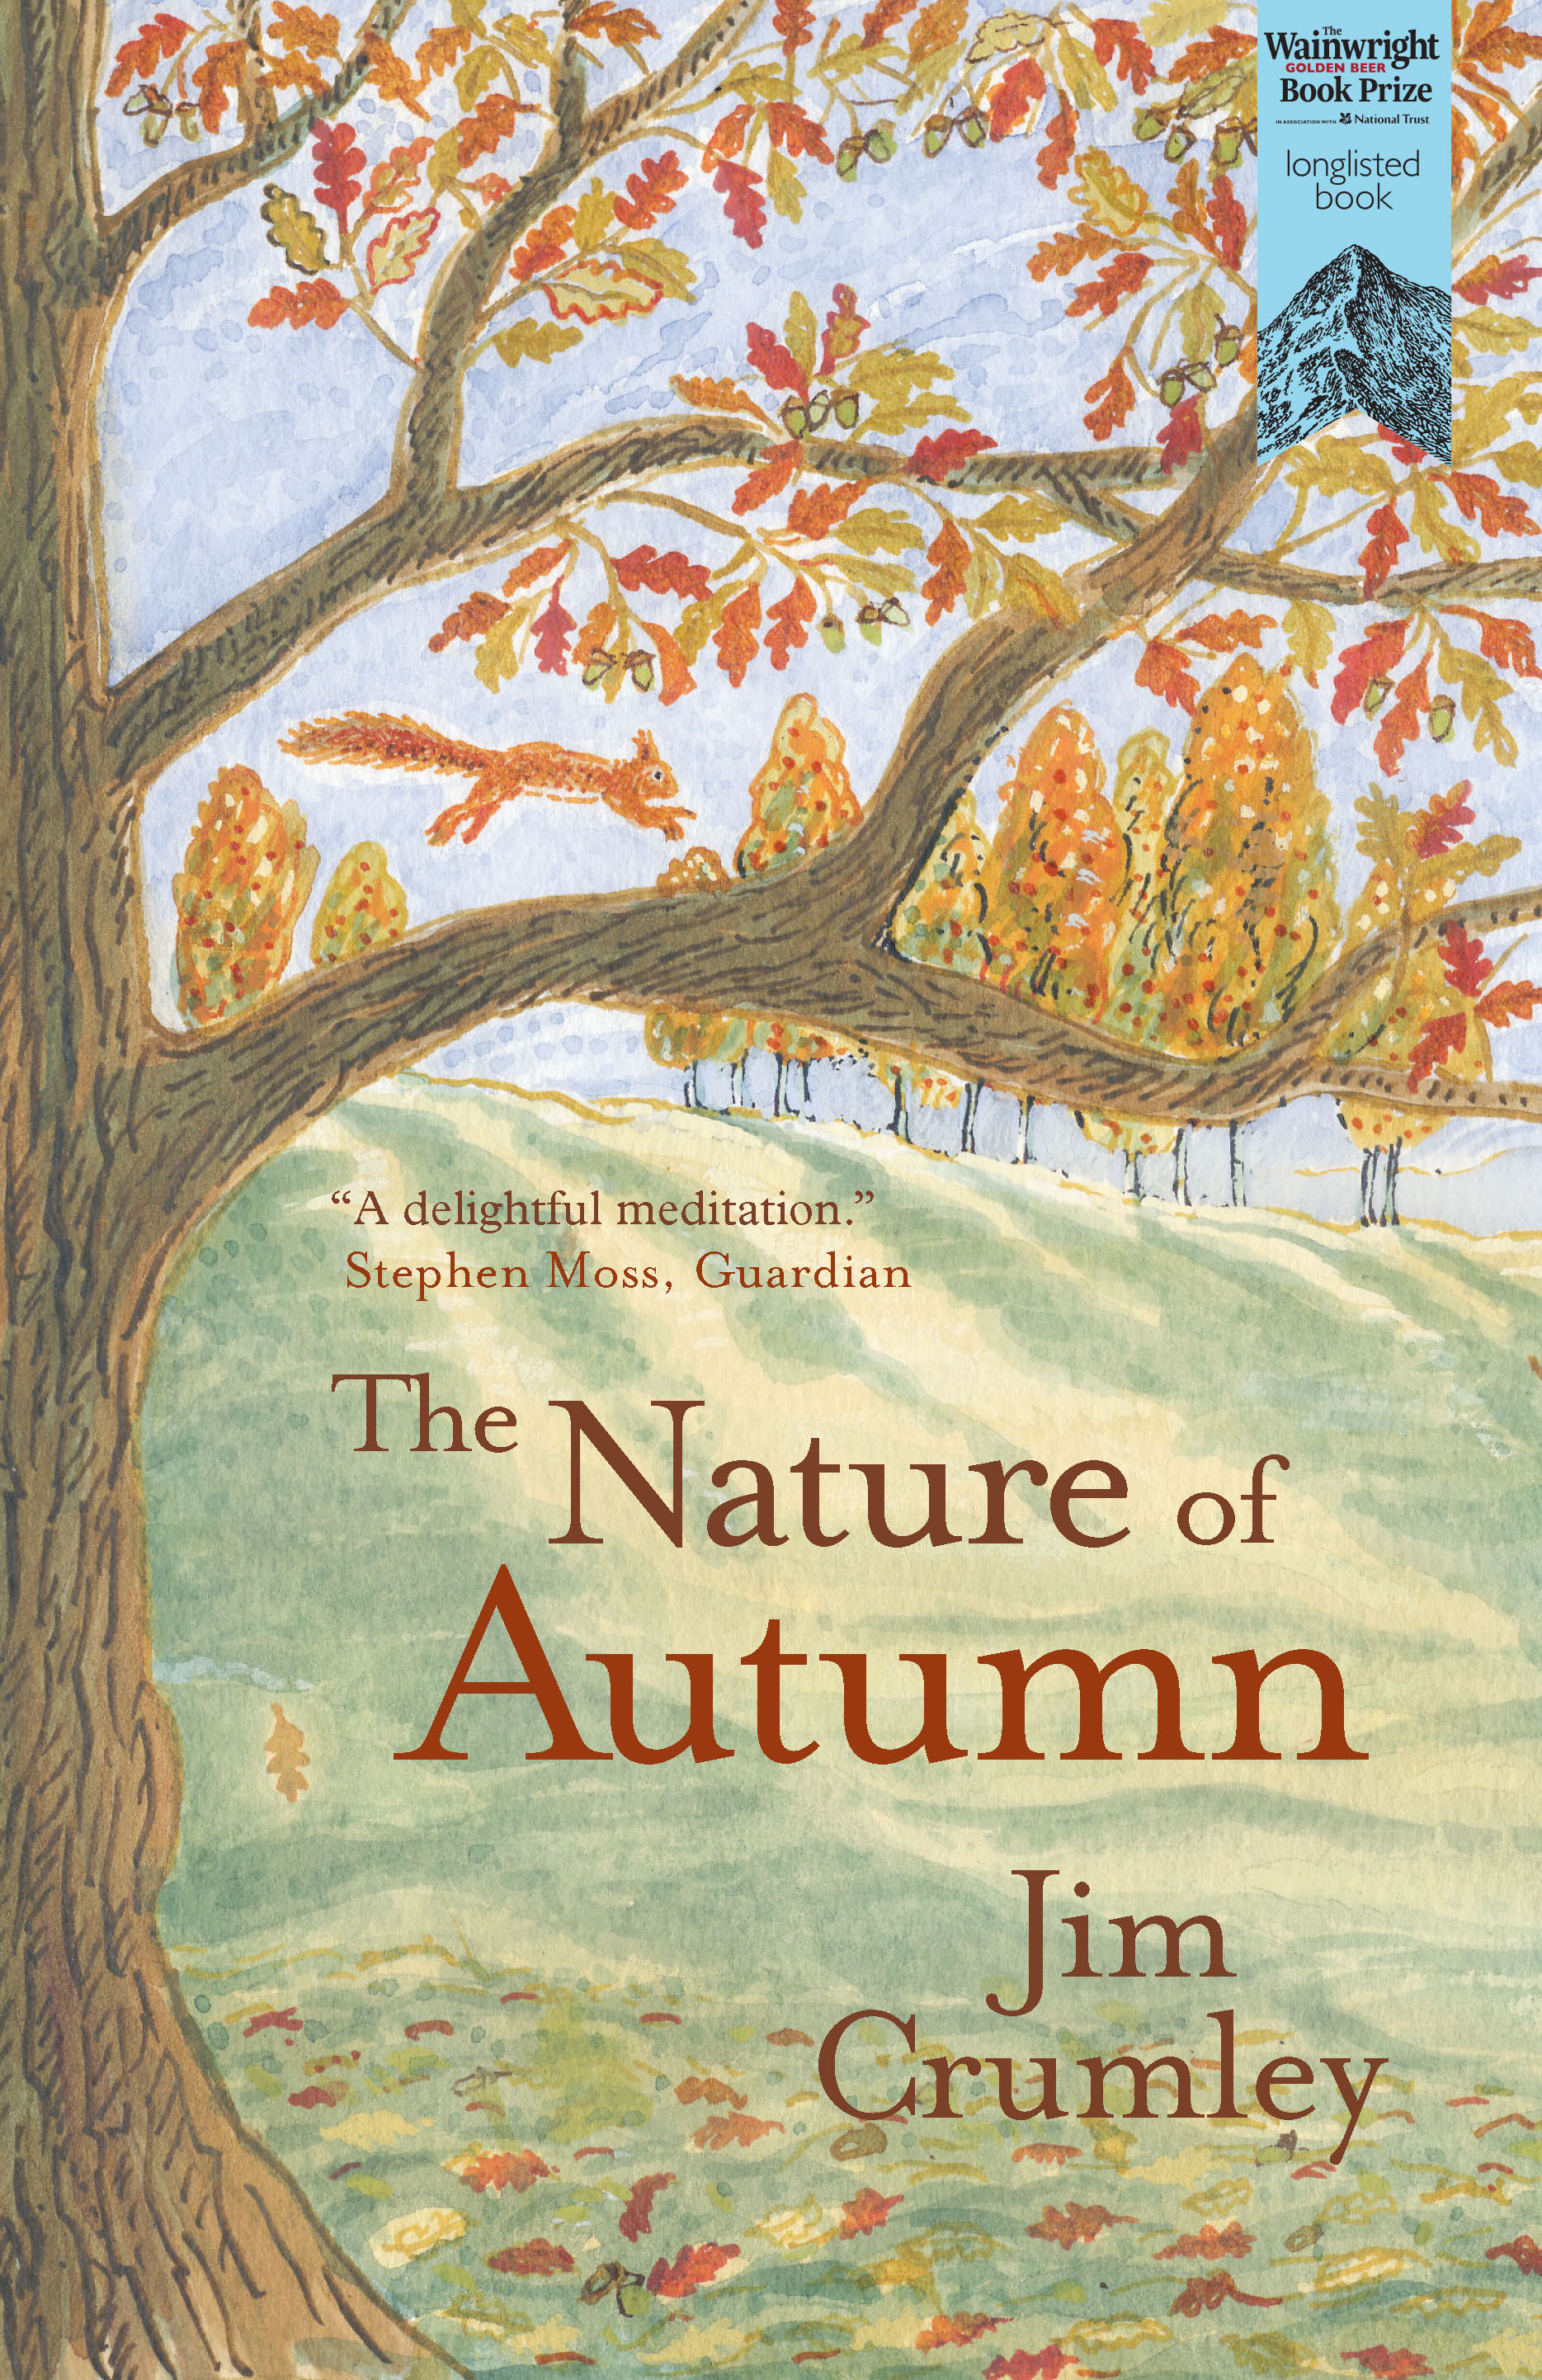 New paperback edition of The Nature of Autumn